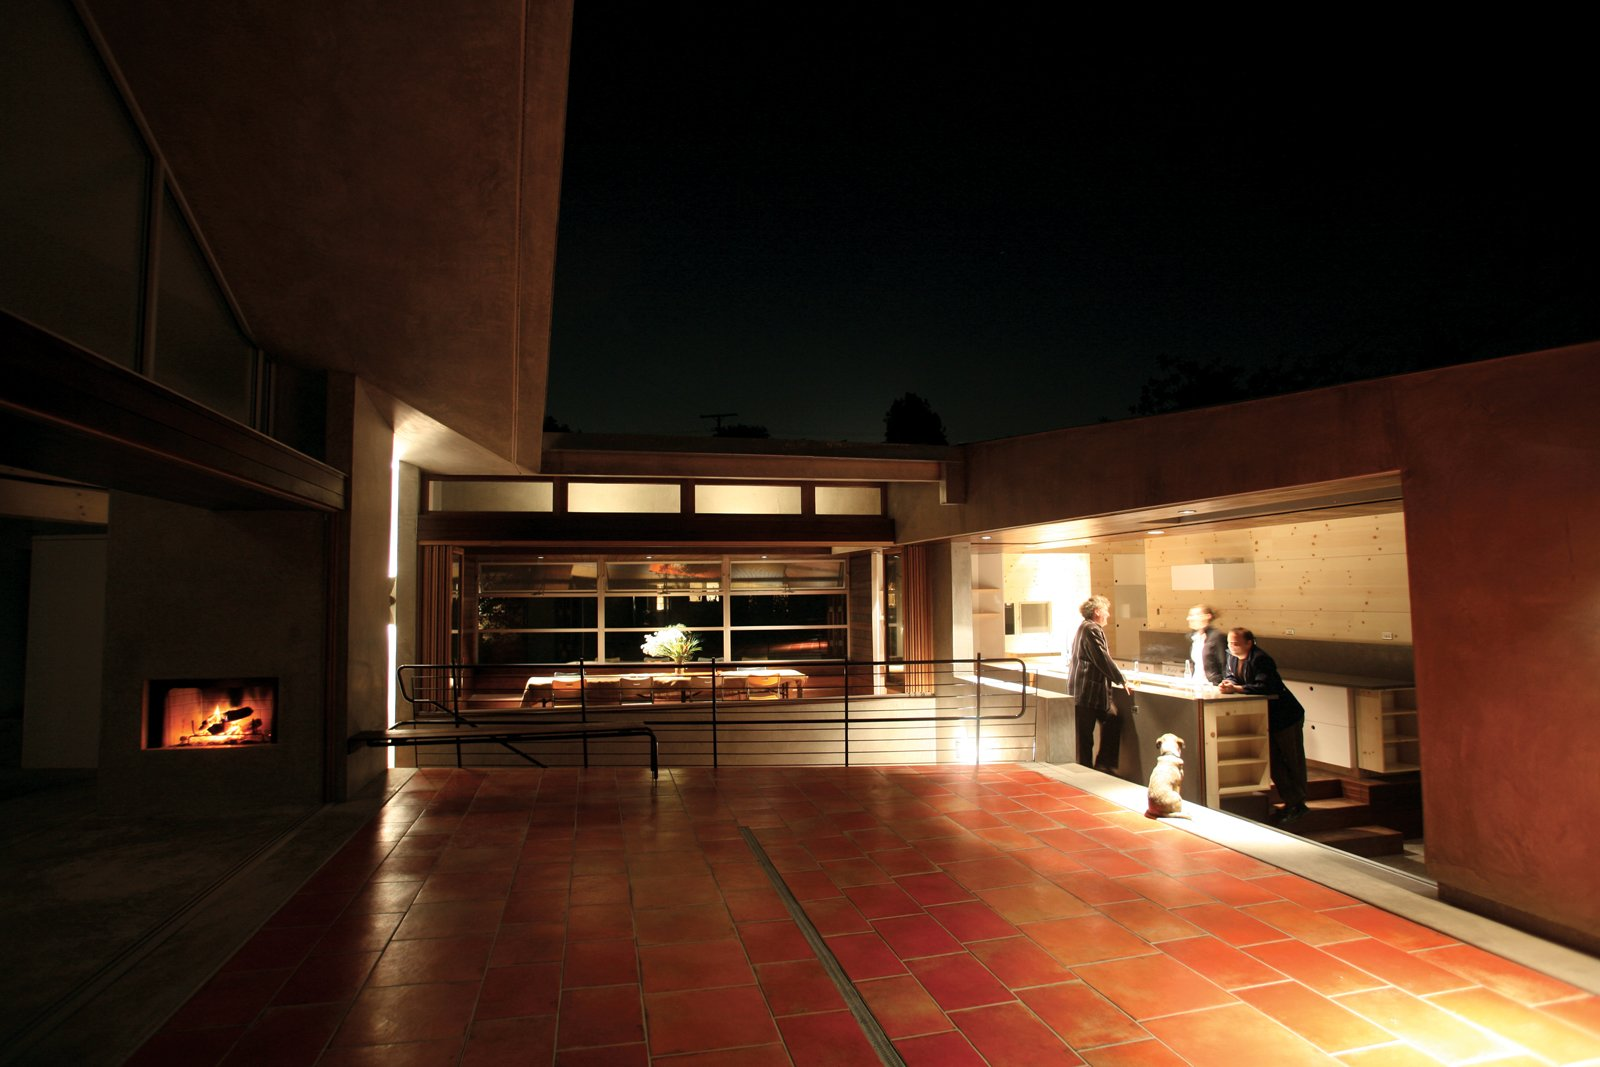 """The two sides of the house look across the courtyard at each other, and are bridged by the dining room, which looks out onto the street below like the wheelhouse of a ship. """"Everyone ends up in the kitchen anyway, so why not put the kitchen in the courtyard?"""" says Robertson. The kitchen features a NanaWall system that opens directly to the outdoors. The only two enclosed rooms in the house are the bedrooms.  Courtyard House by David A. Greene"""